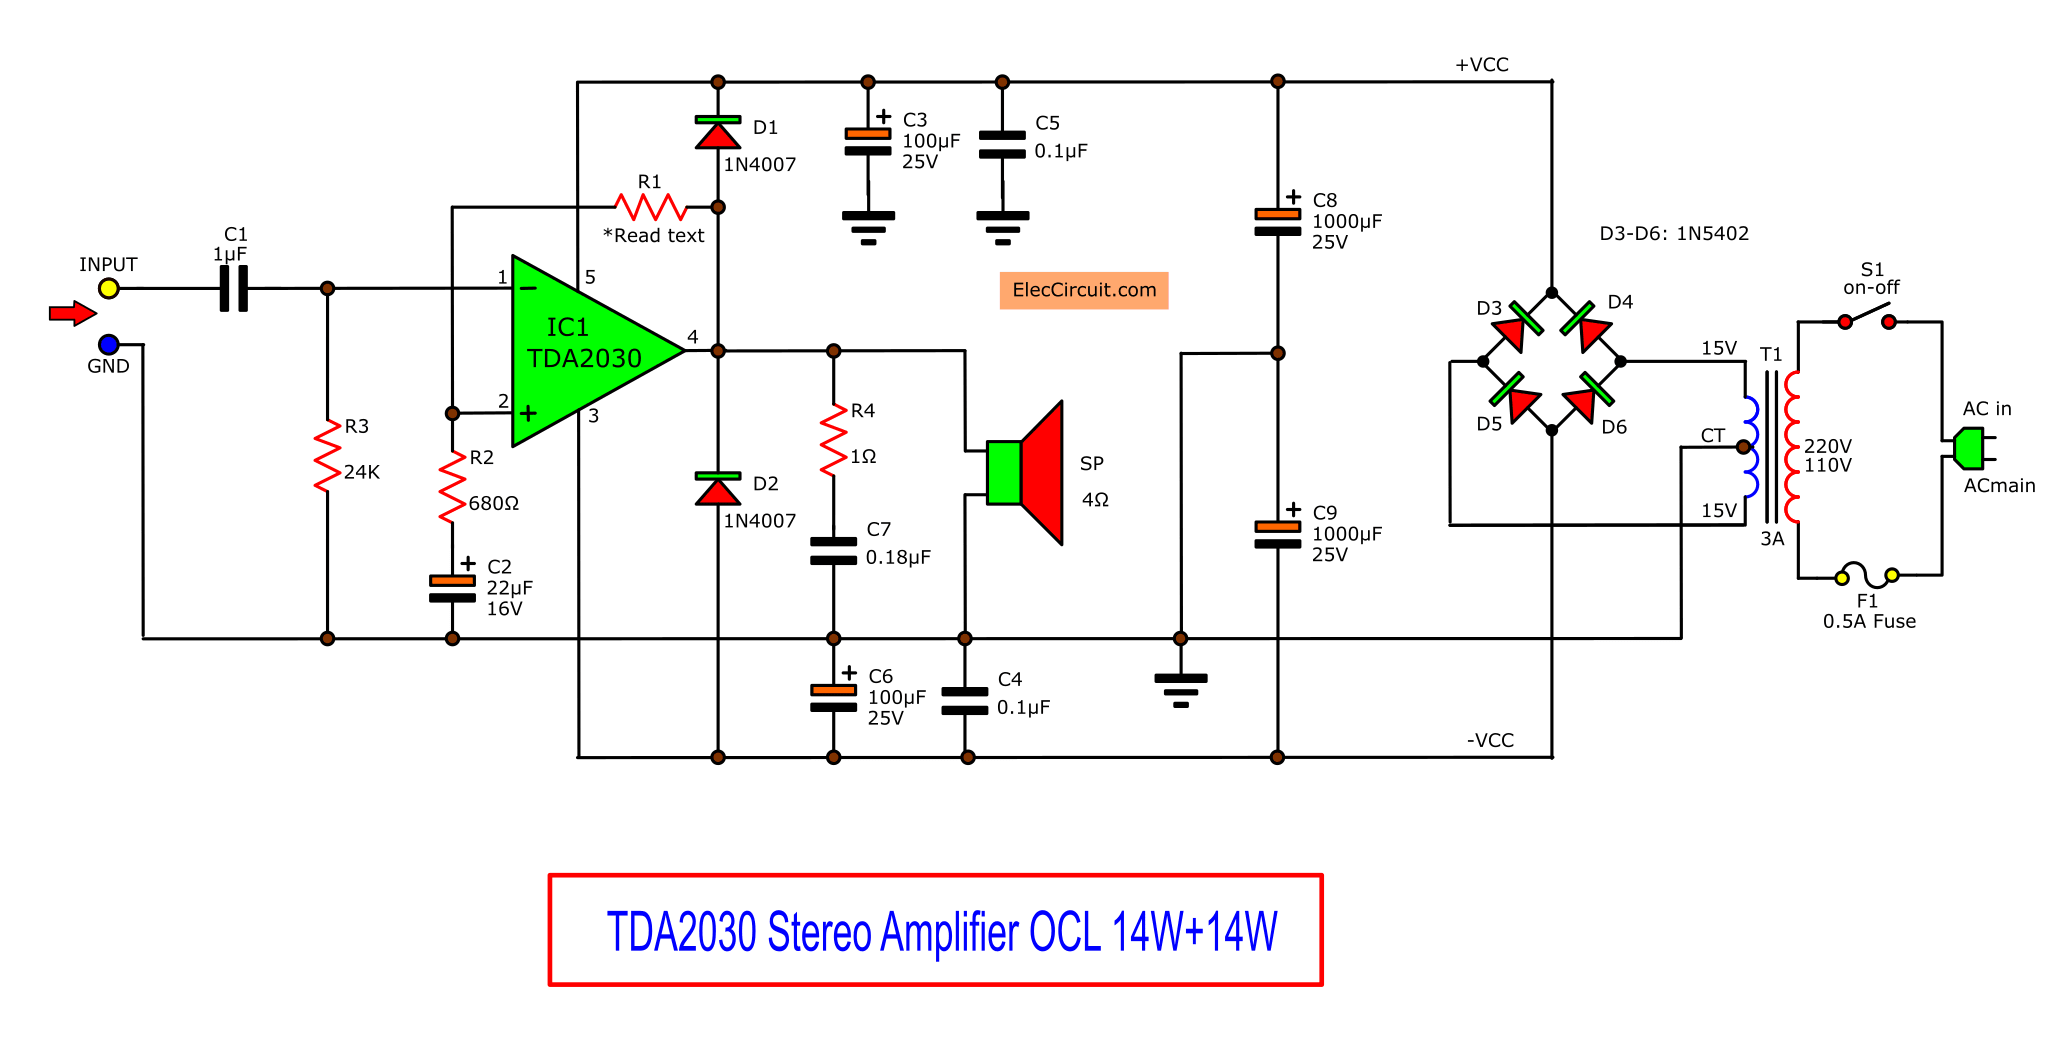 TDA2030 stereo amplifier circuit with PCB - ElecCircuit ...